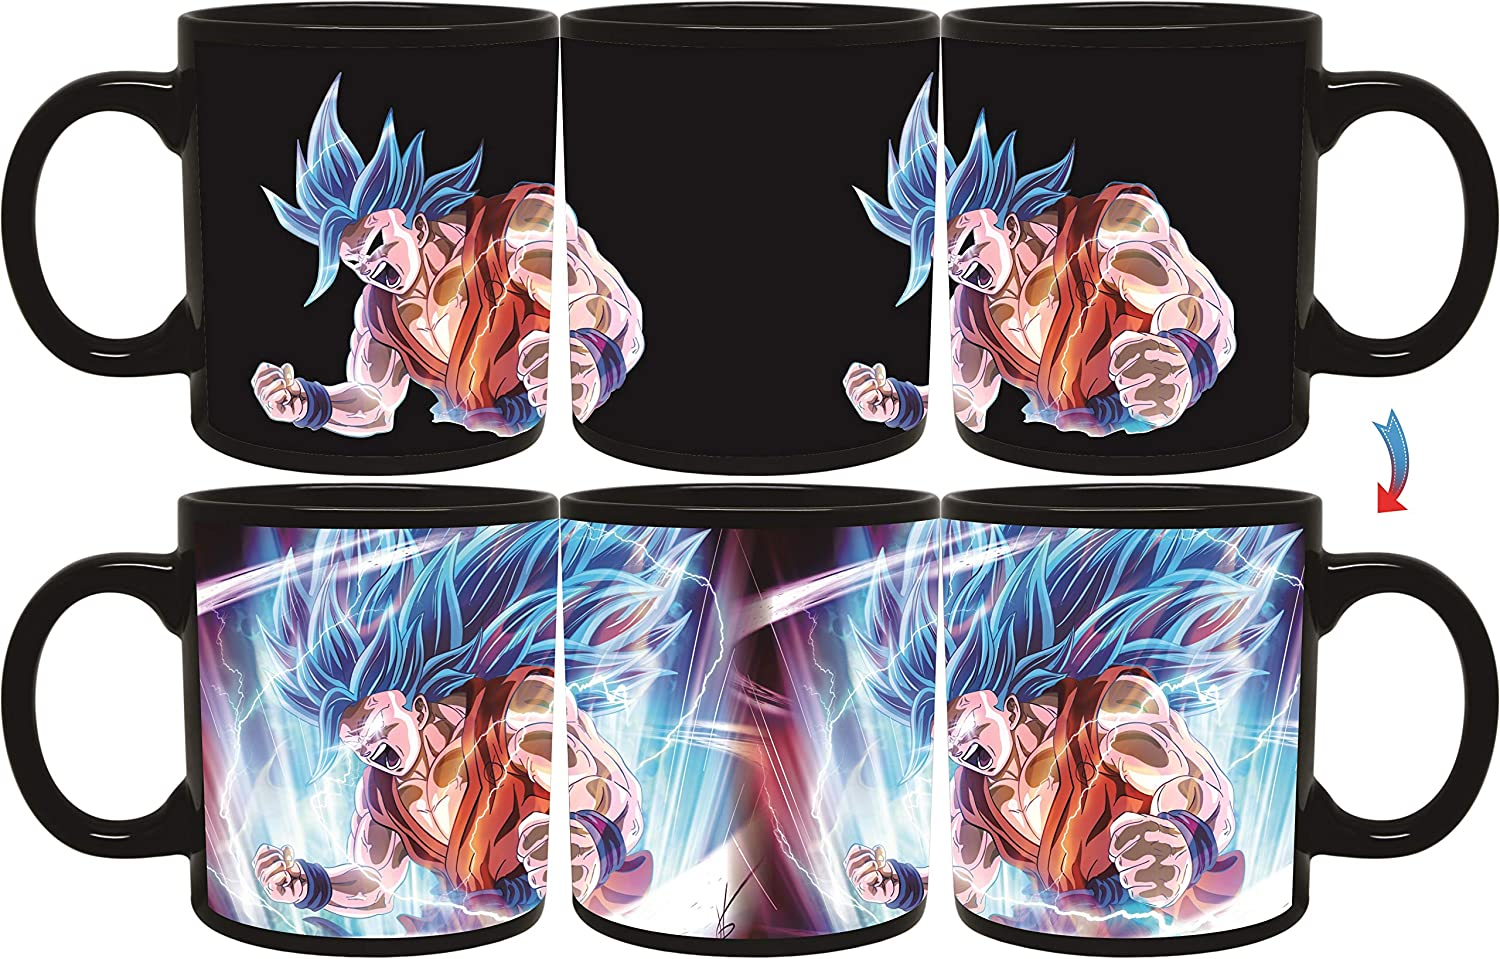 Sakura Elegance Vegeta Goku Black Anime Cartoon Character Dragon Ball Z Mug Fusion Collectibles Heat Reactive Color Changing Mugs 11oz (Goku) (Goku Blue)